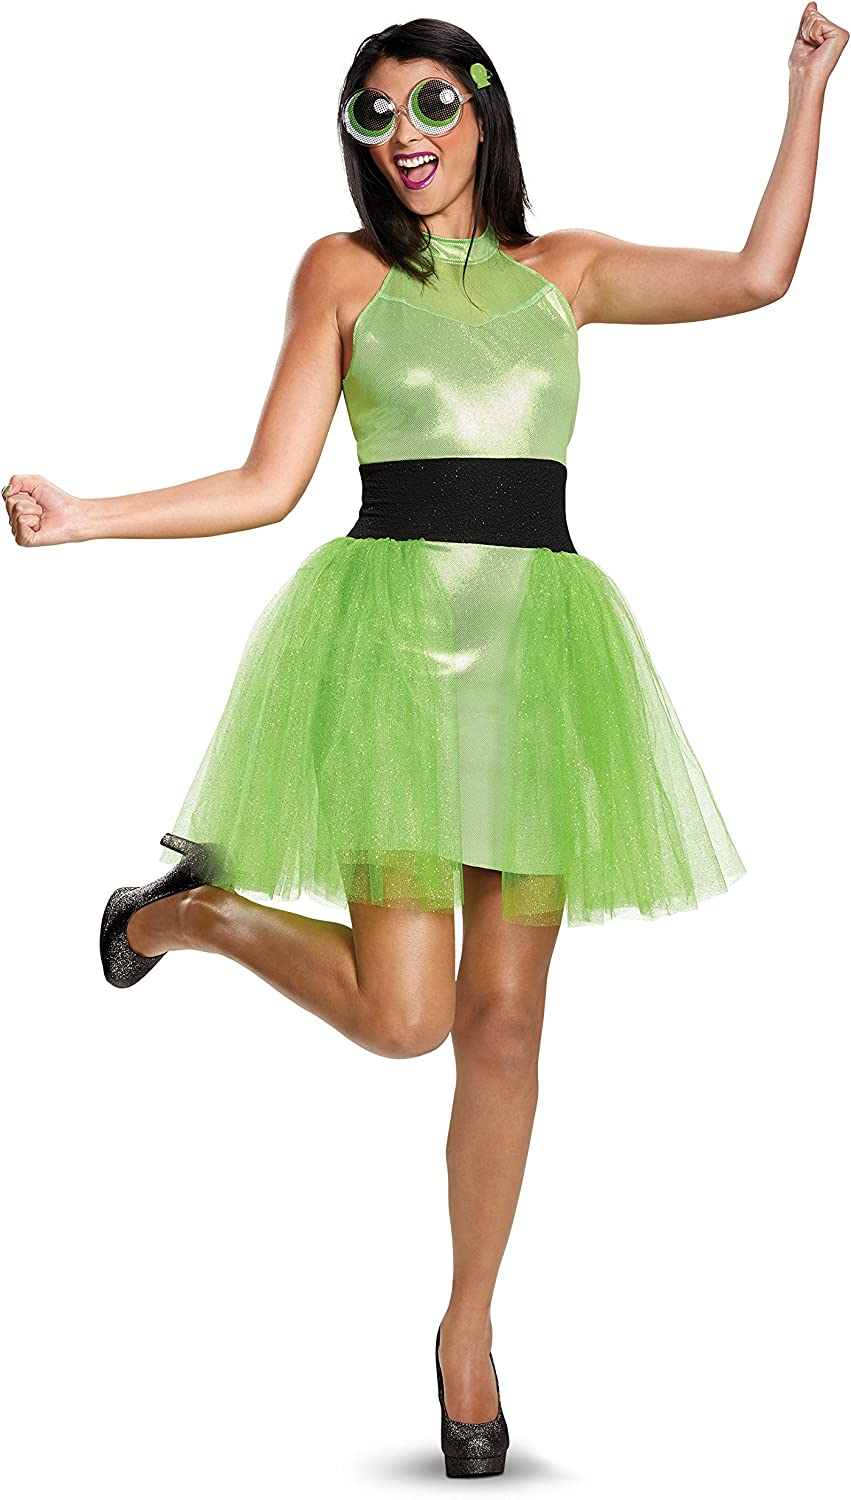 Powerpuff Girls Deluxe Costume Halloween Fancy Dress